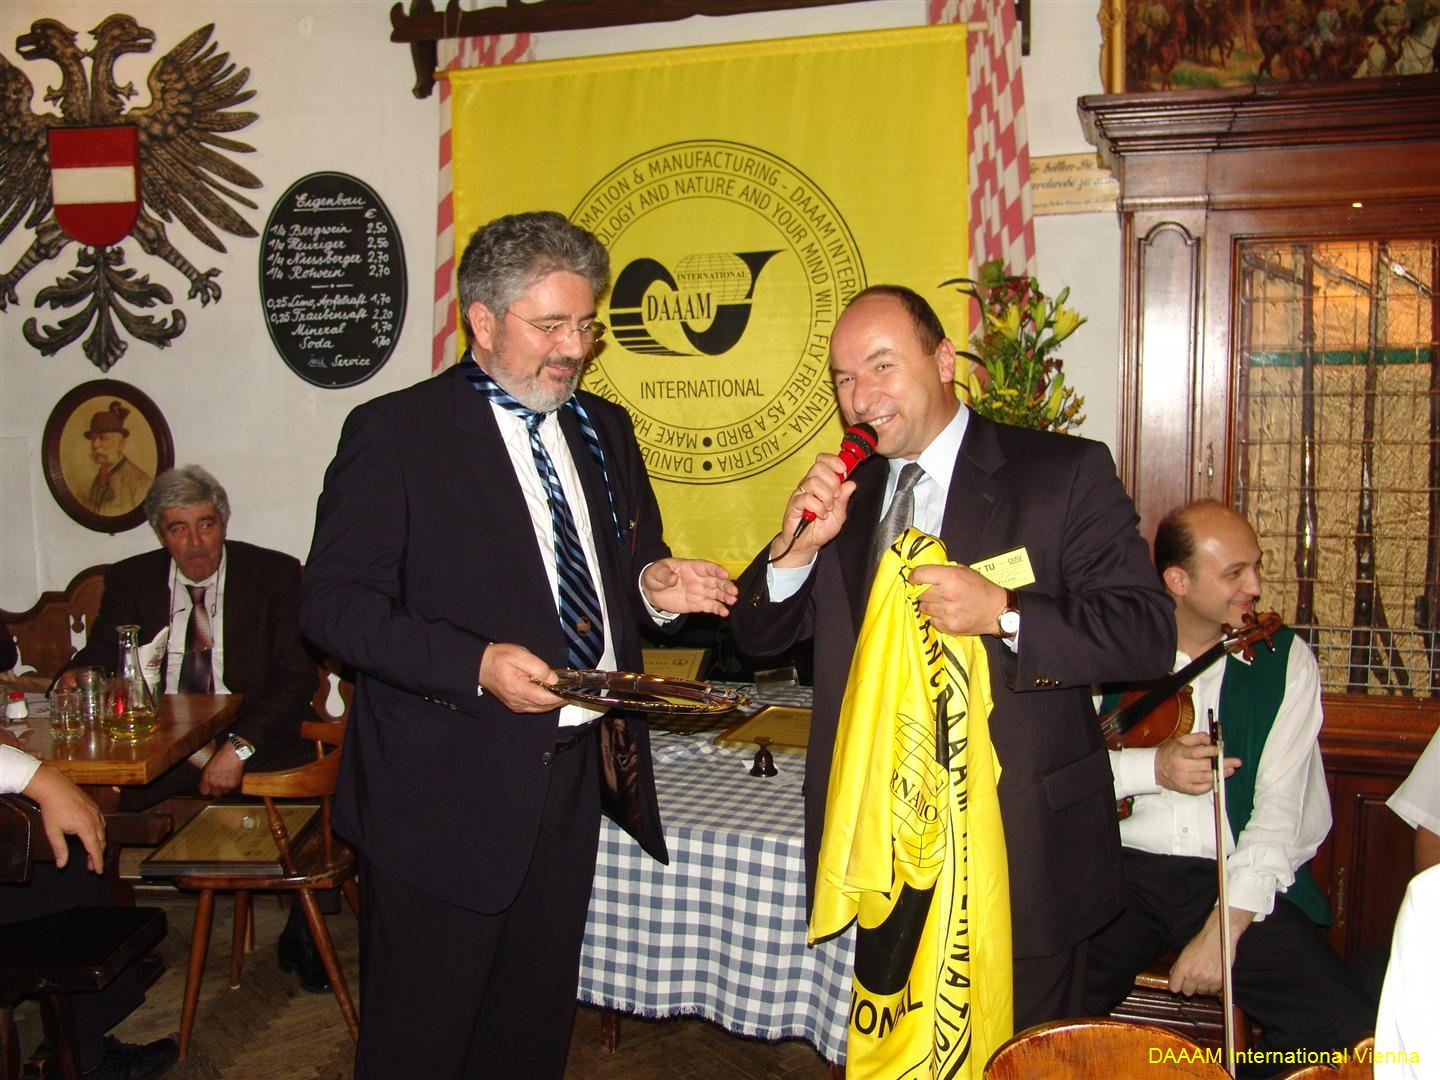 daaam_2006_vienna_dinner_recognitions_lectures_085